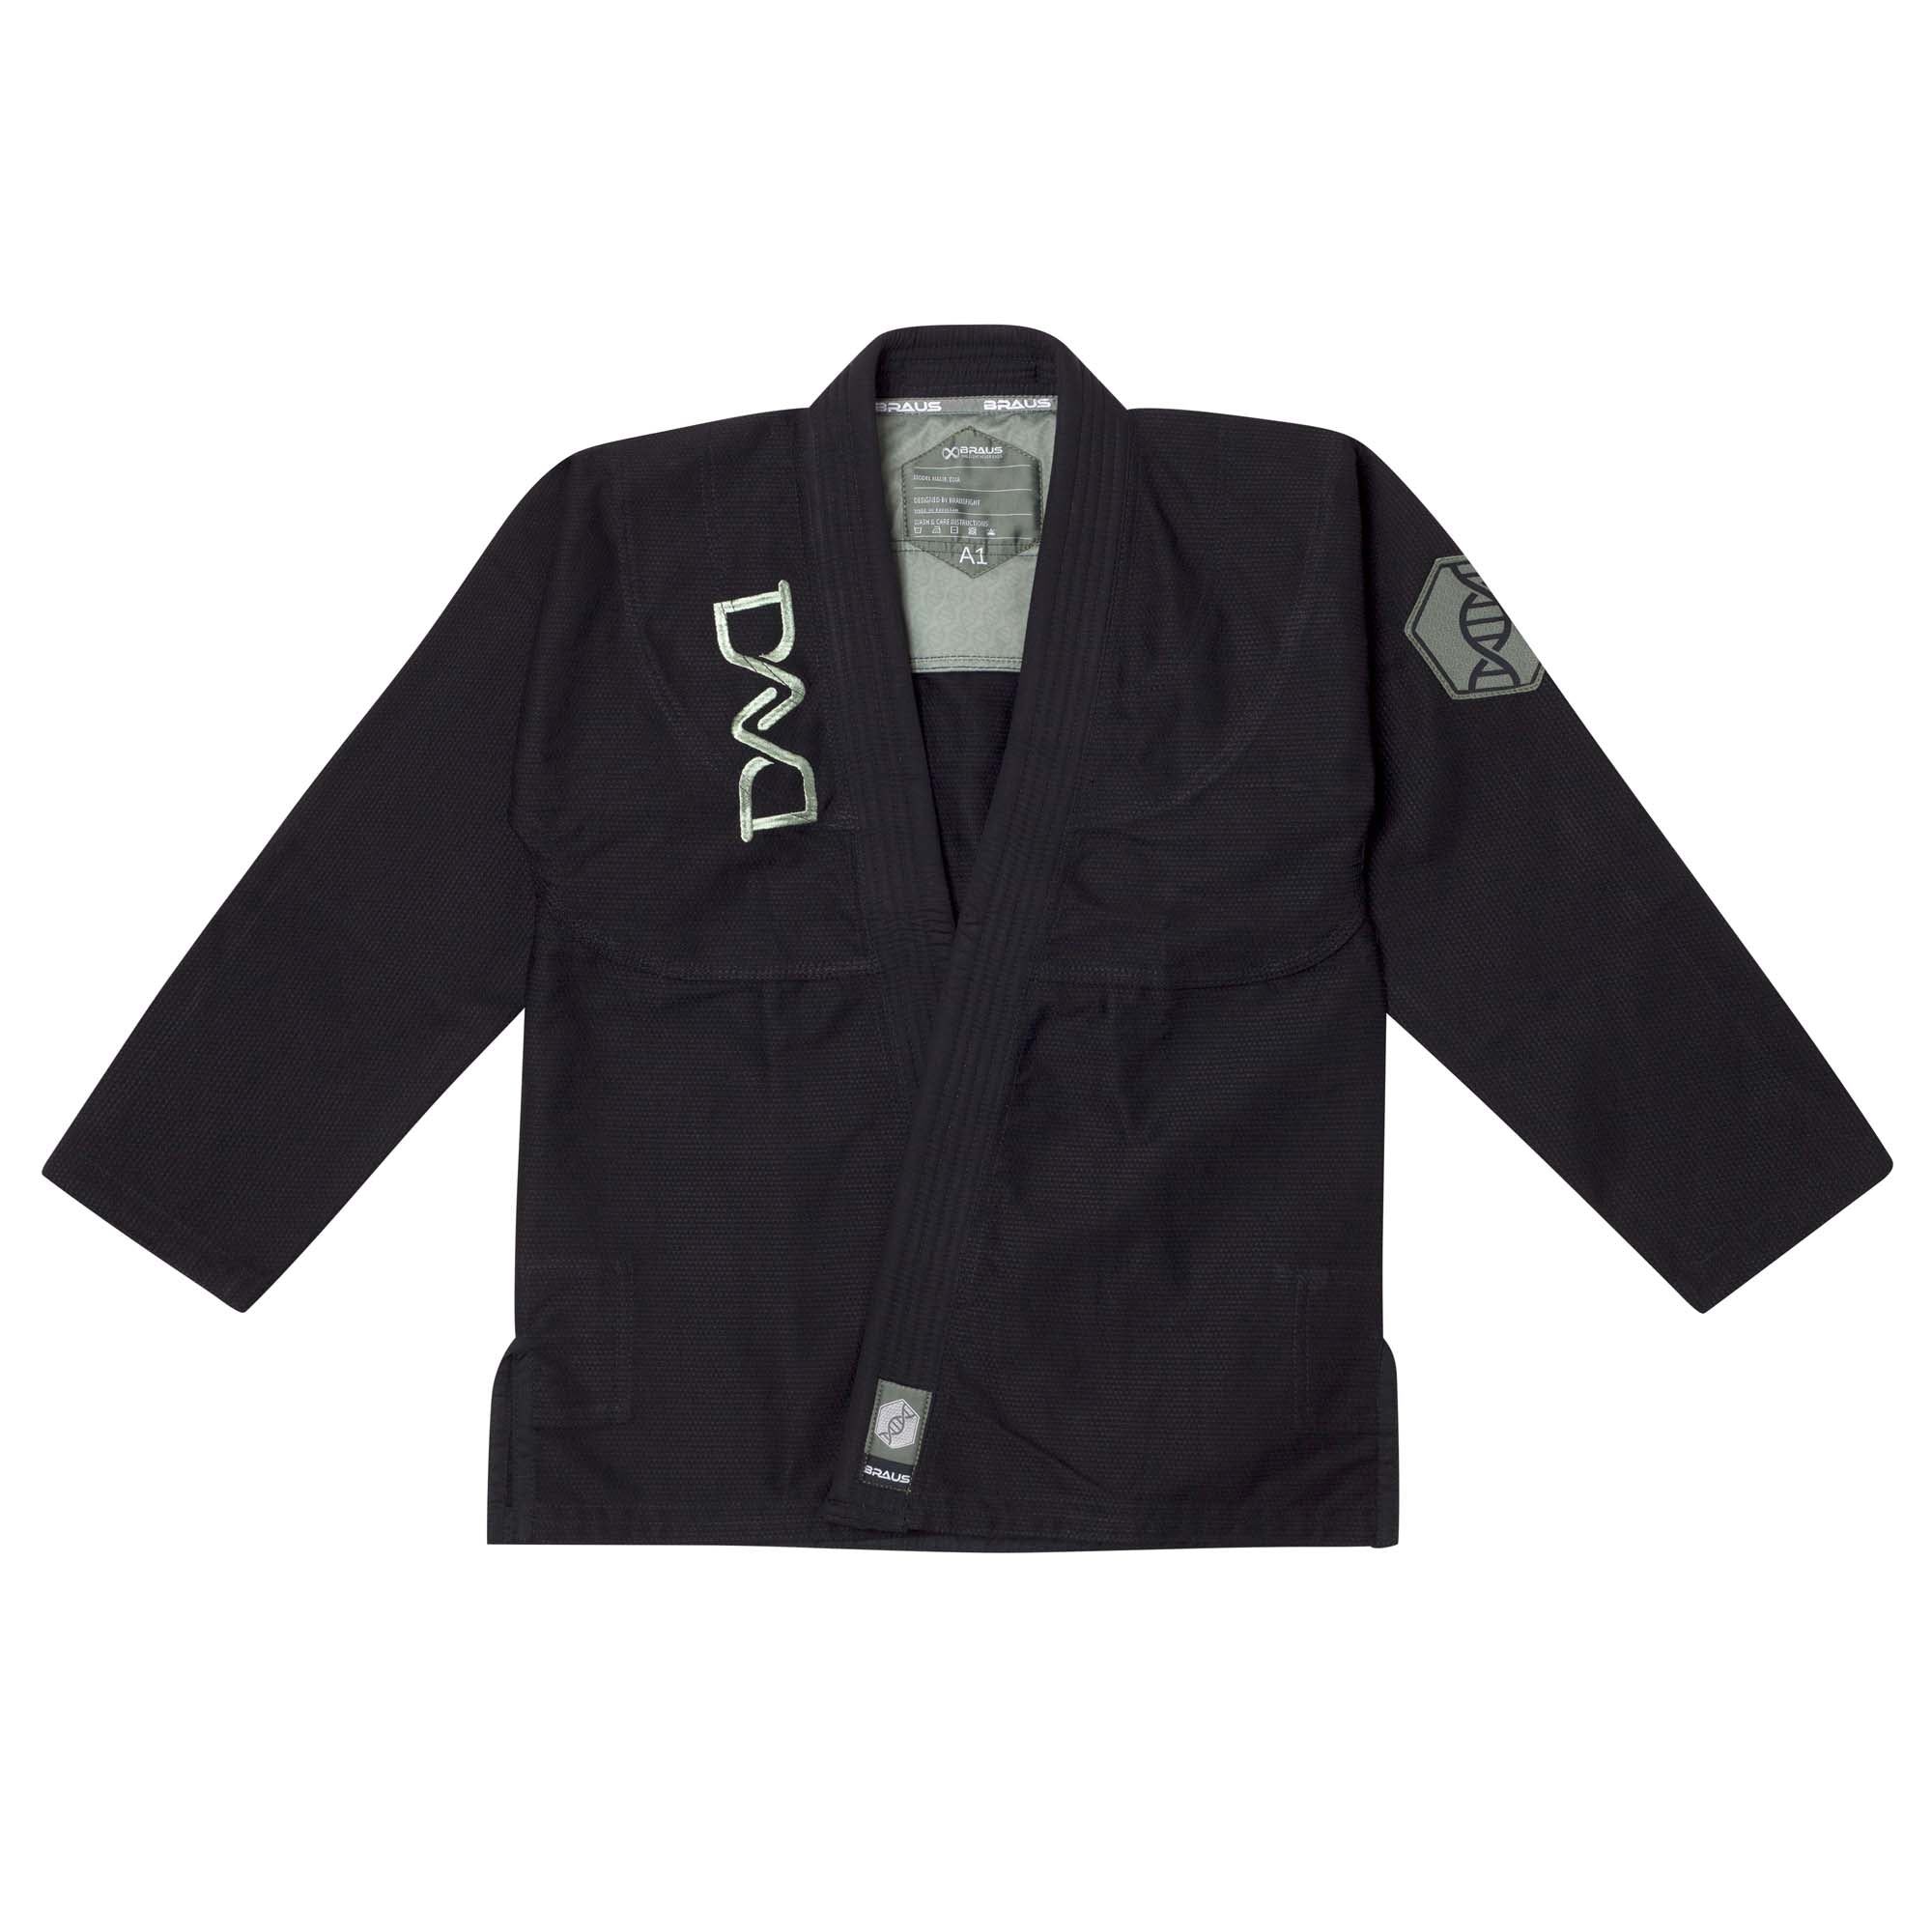 Braus DNA Jiu Jitsu Gi - Black